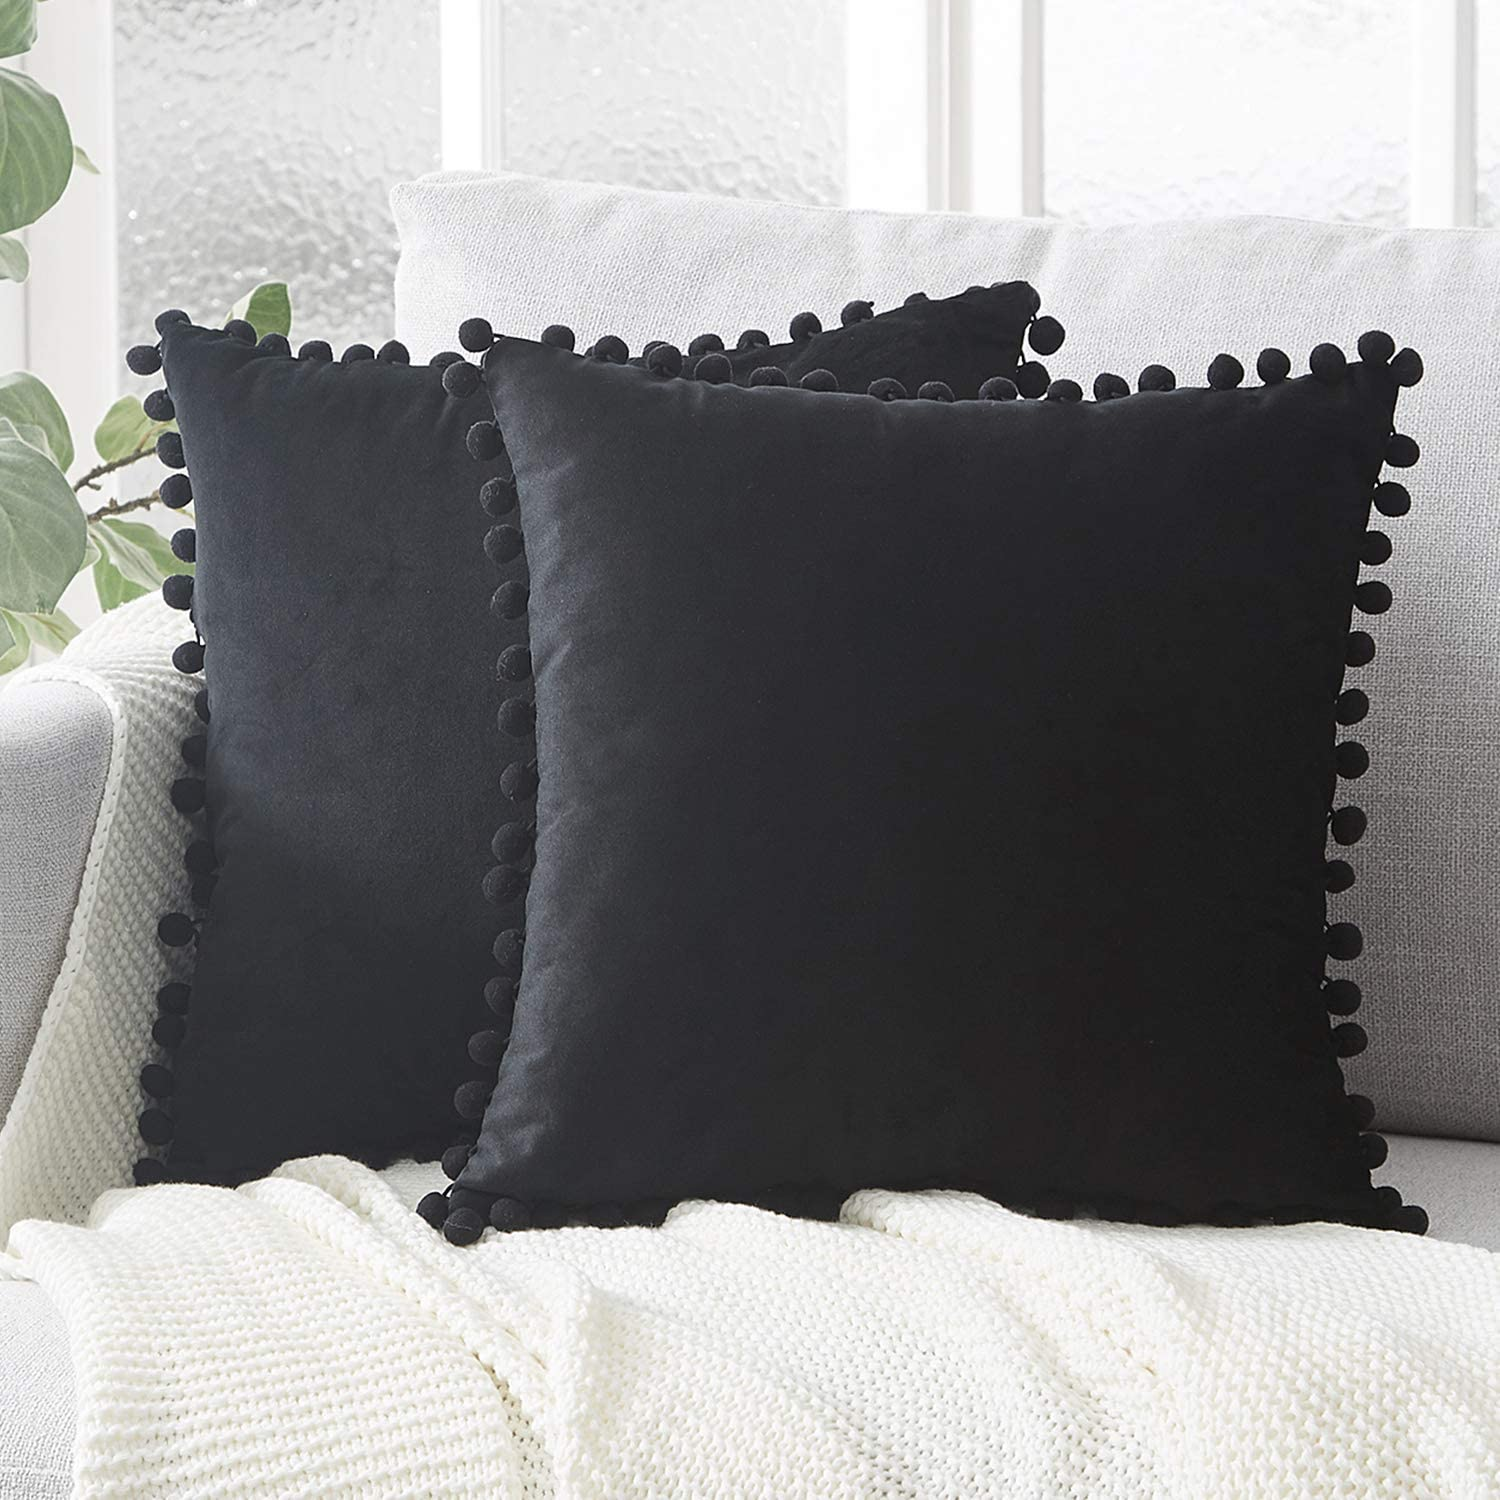 topfinel solid decorative throw pillow covers with pom poms square soft velvet cushion covers 24 x 24 for bohemian home decor pack of 2 black